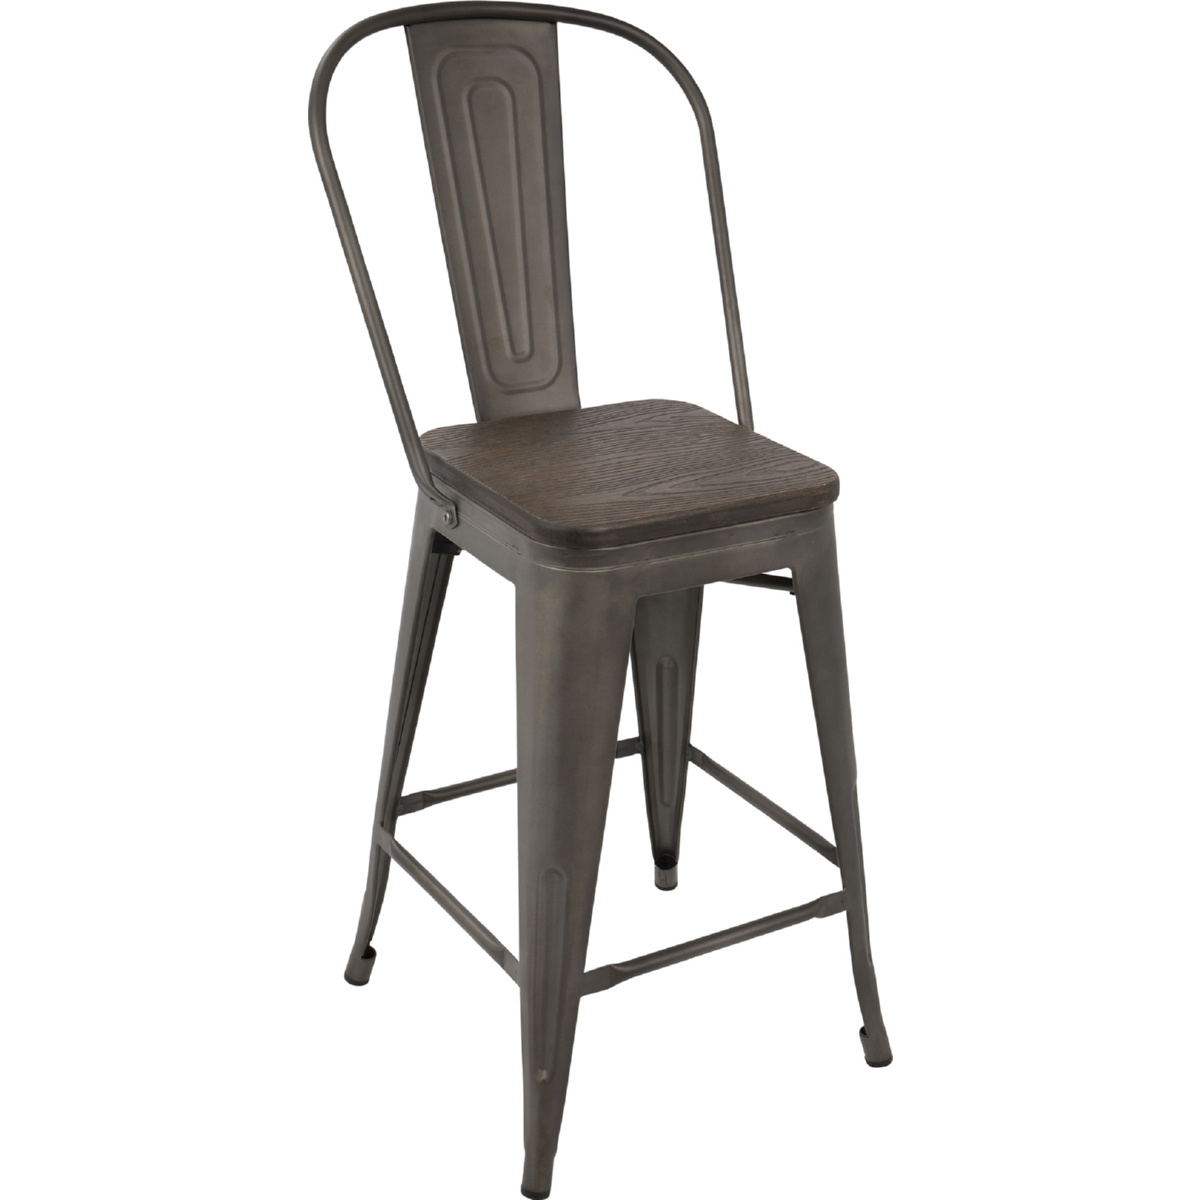 Miraculous Oregon High Back Counter Stool In Antique Metal Espresso Bamboo Set Of 2 By Lumisource Ocoug Best Dining Table And Chair Ideas Images Ocougorg